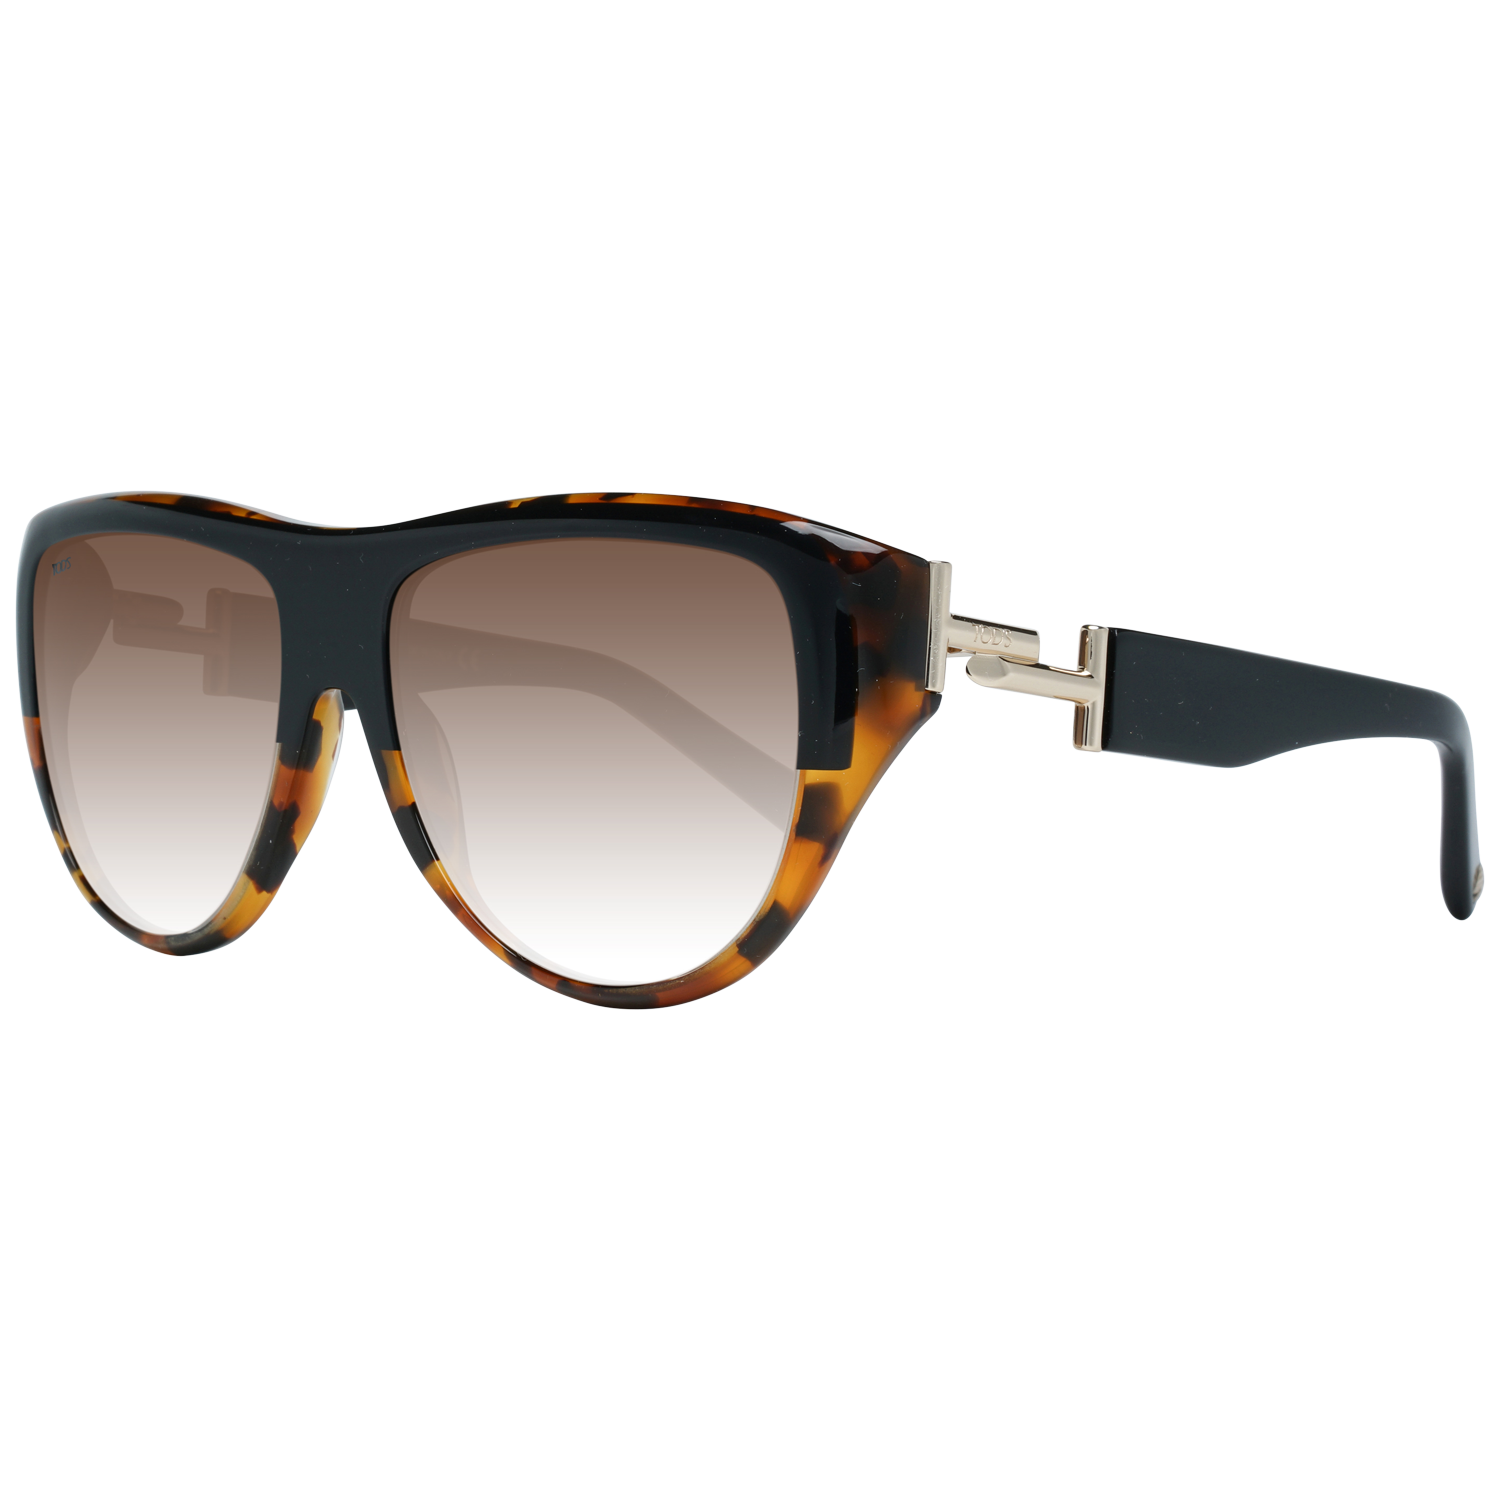 Tods Sunglasses TO0226 05F 56 Brown